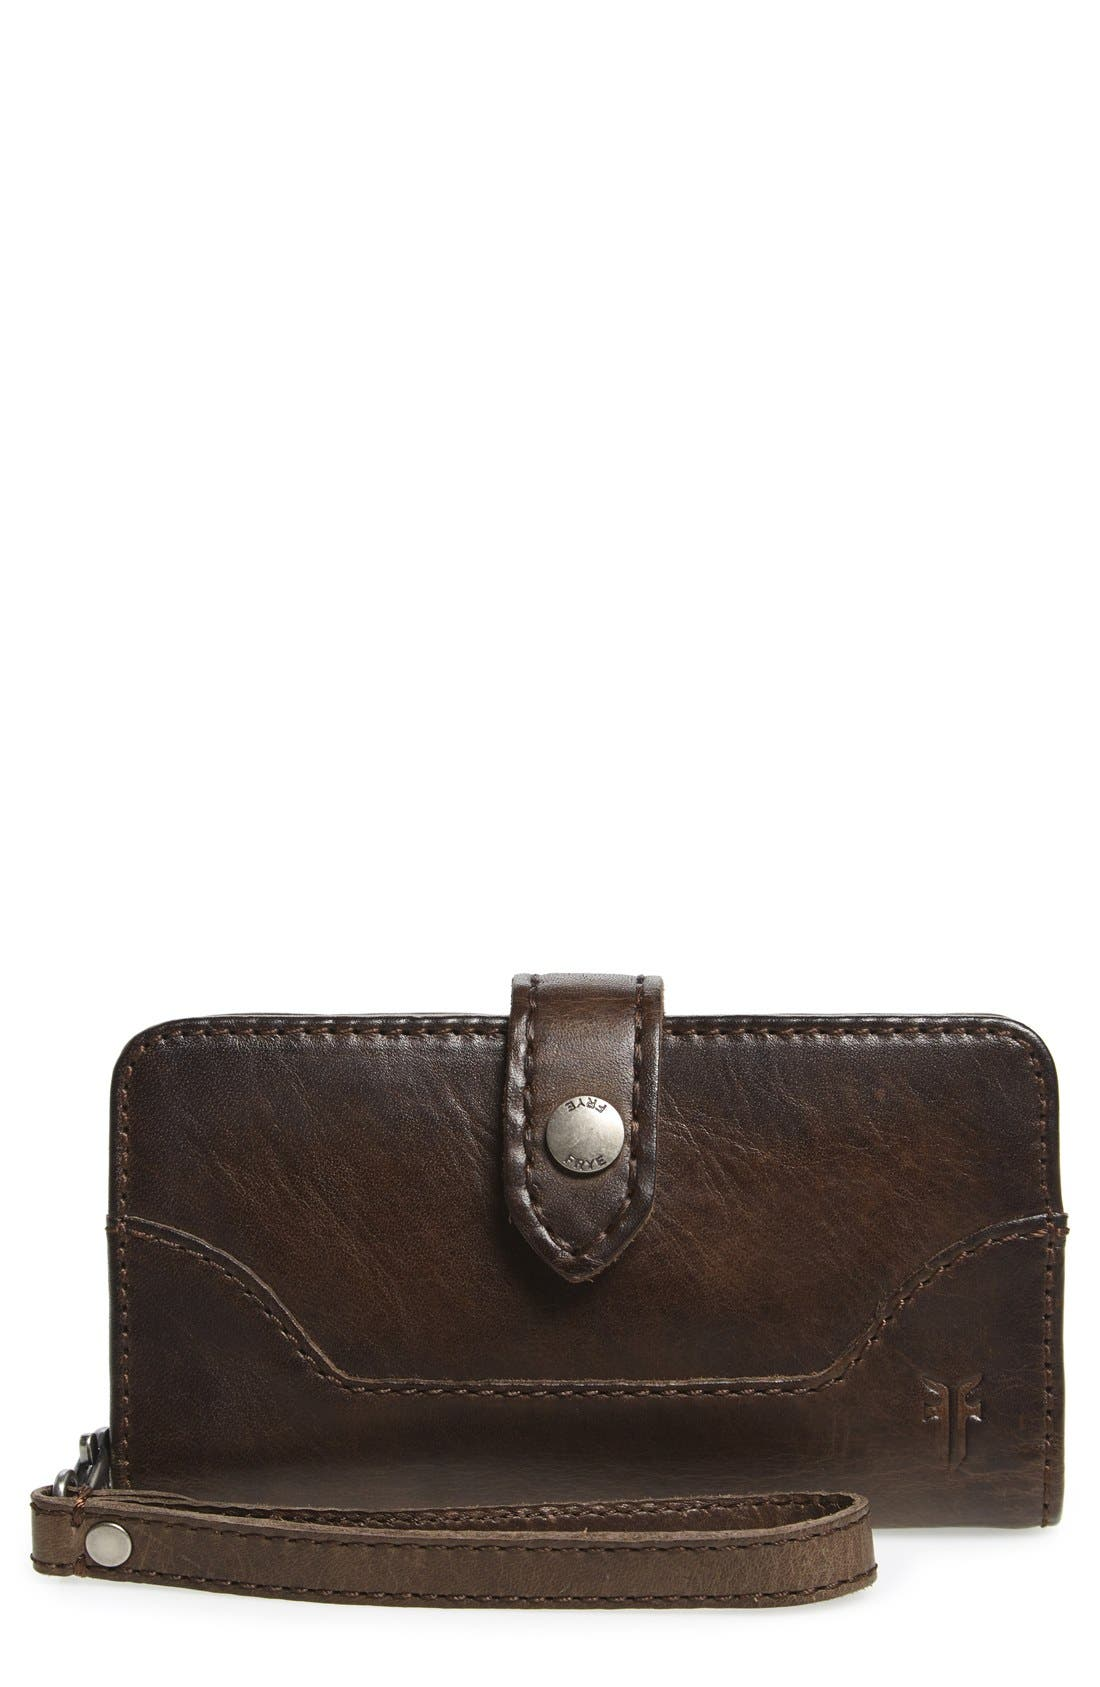 'Melissa' Leather Phone Wallet,                             Main thumbnail 1, color,                             020